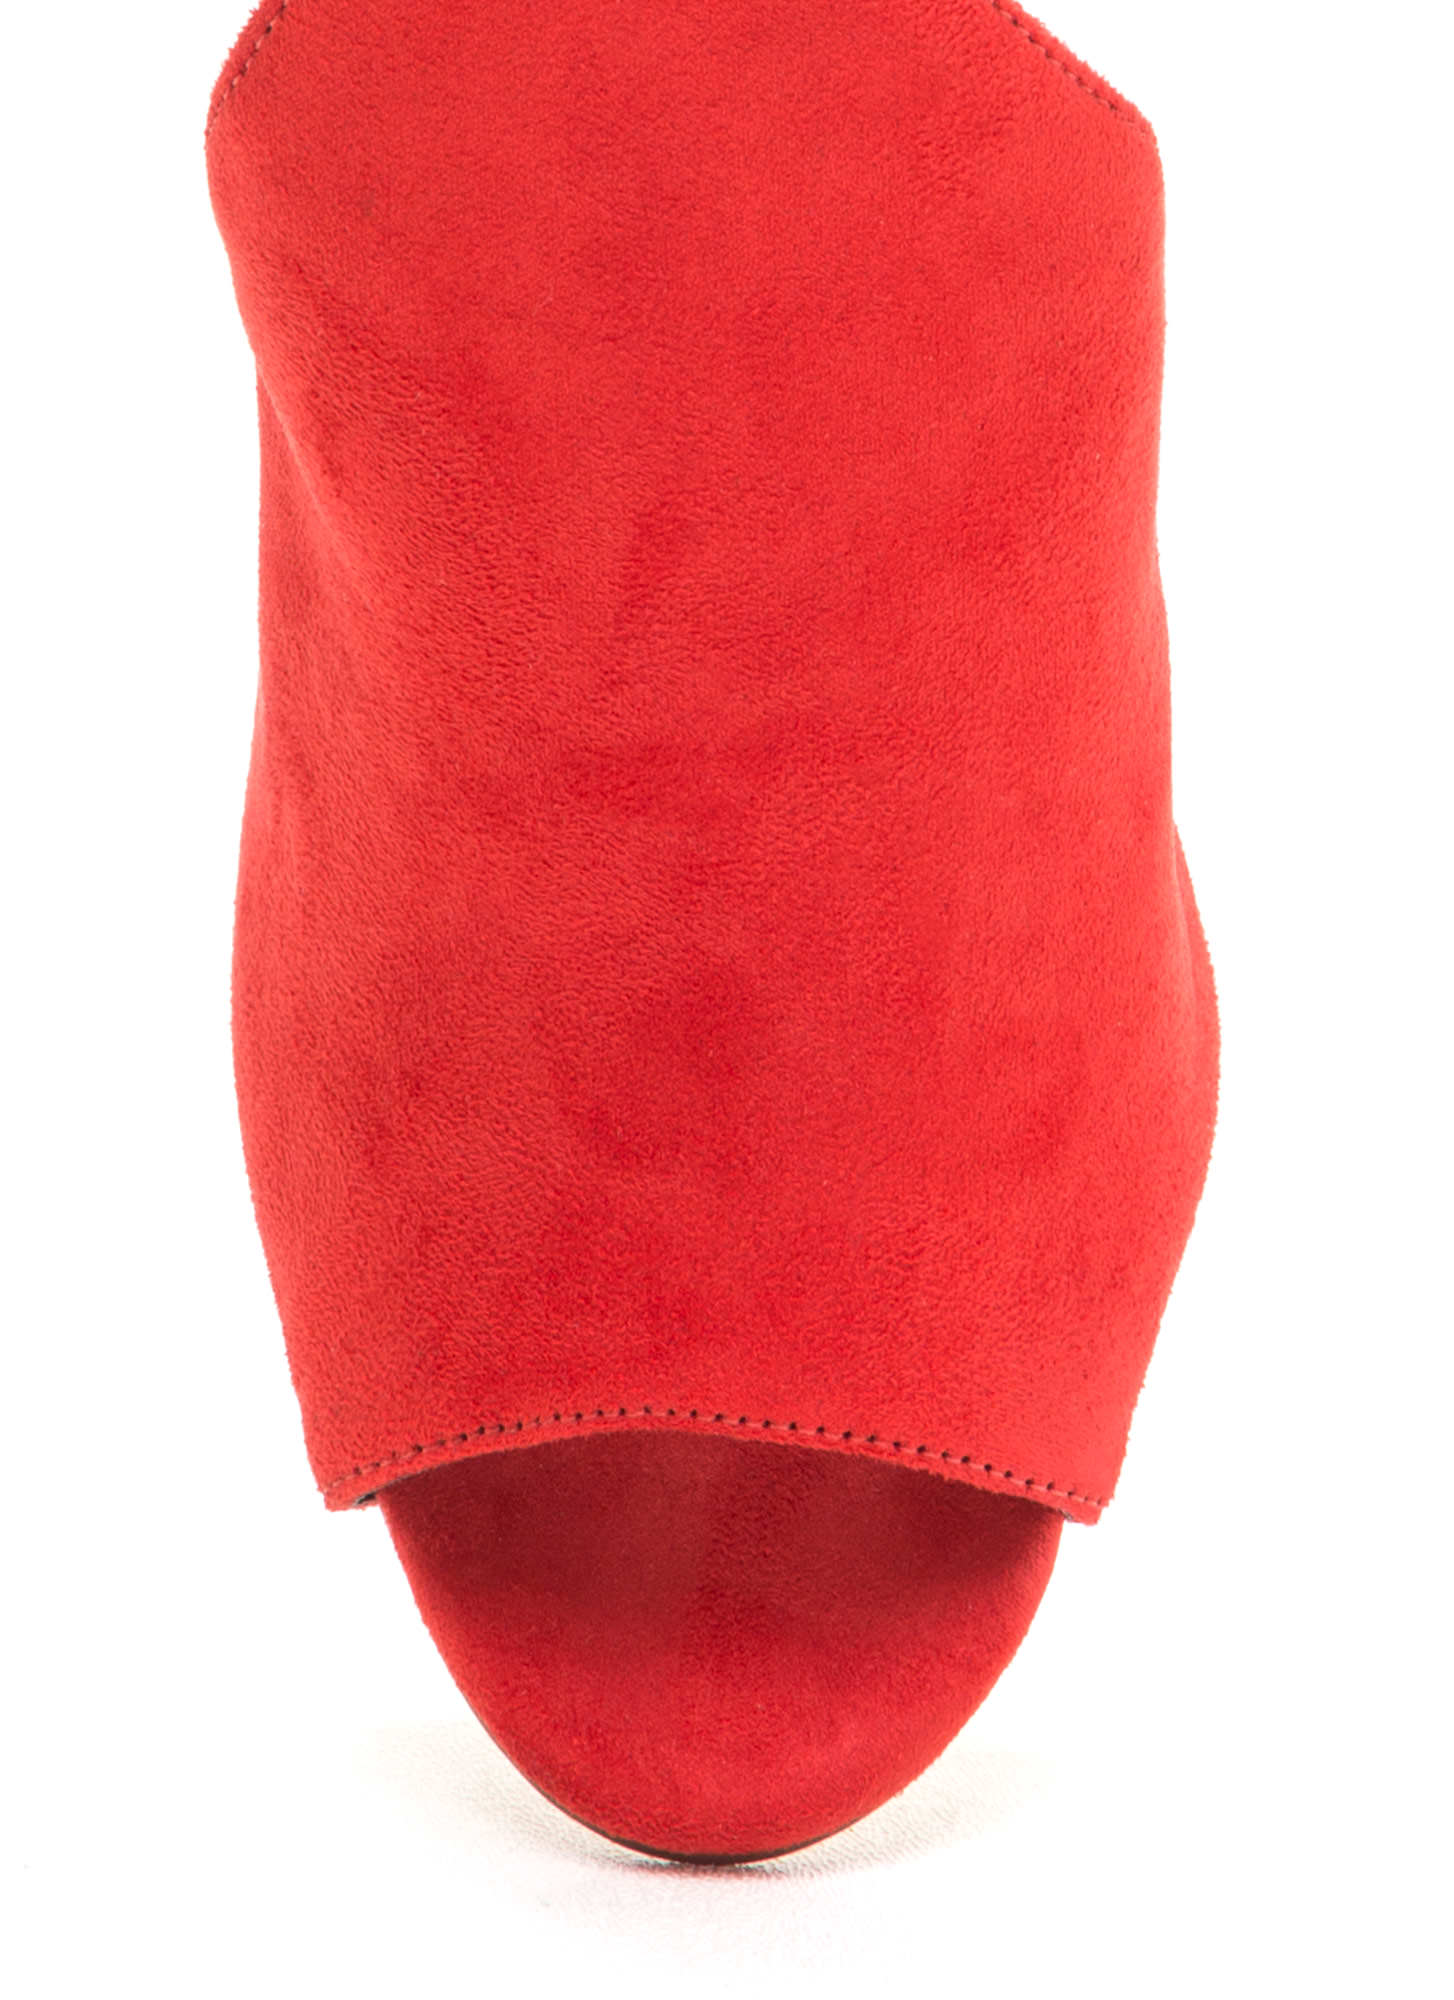 To The Point Faux Suede Mule Heels RED (Final Sale)